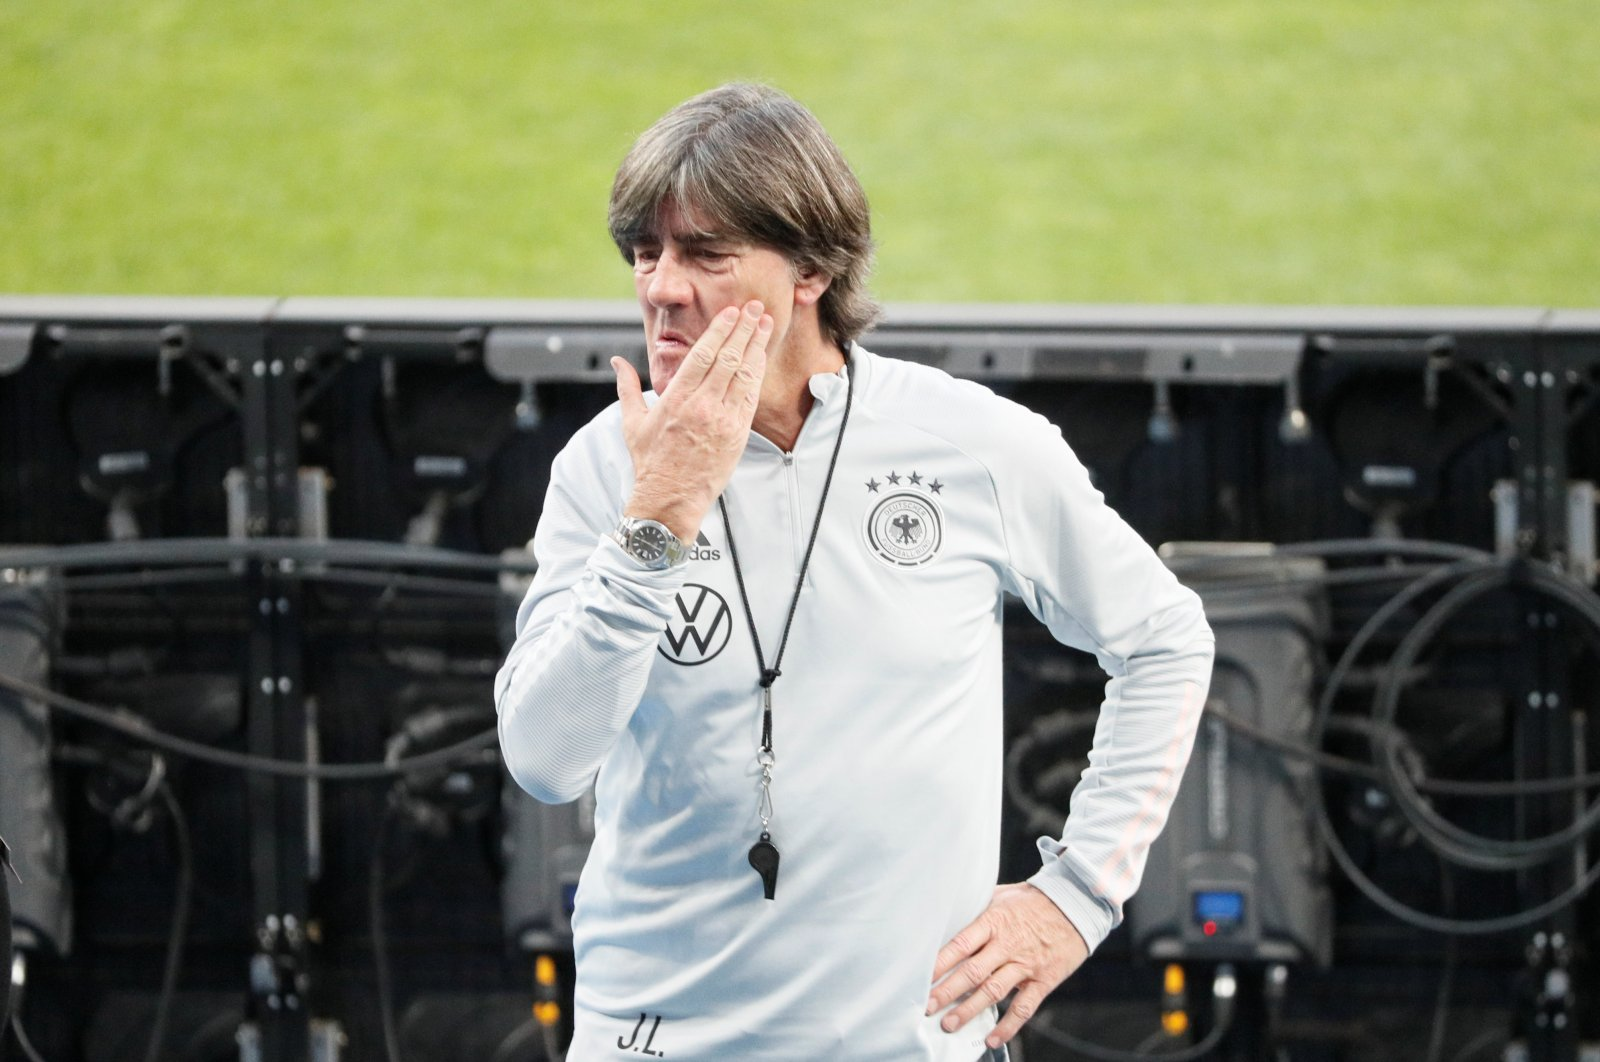 Germany coach Joachim Low during a training session ahead of UEFA Nations League match against Ukraine, in Kyiv, Oct. 9, 2020. (Reuters Photo)